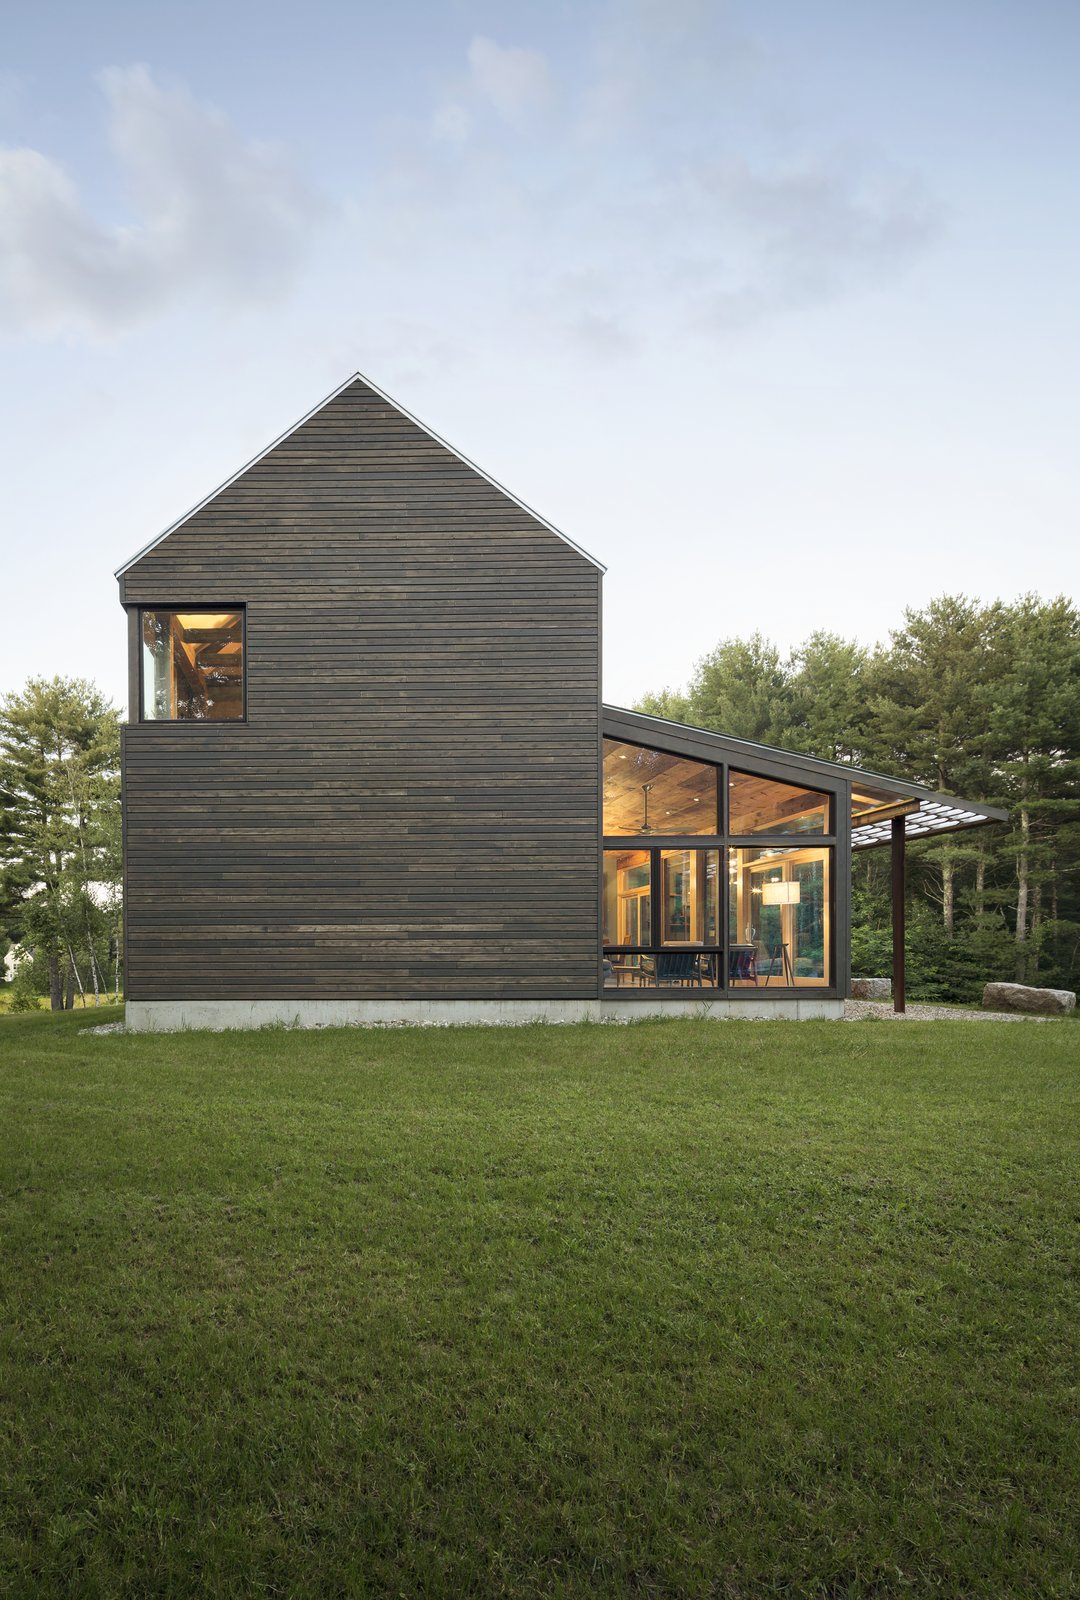 Exterior, House Building Type, Farmhouse Building Type, Shingles Roof Material, and Wood Siding Material  Best Photos from A Maine Farmhouse Built With Salvaged Materials